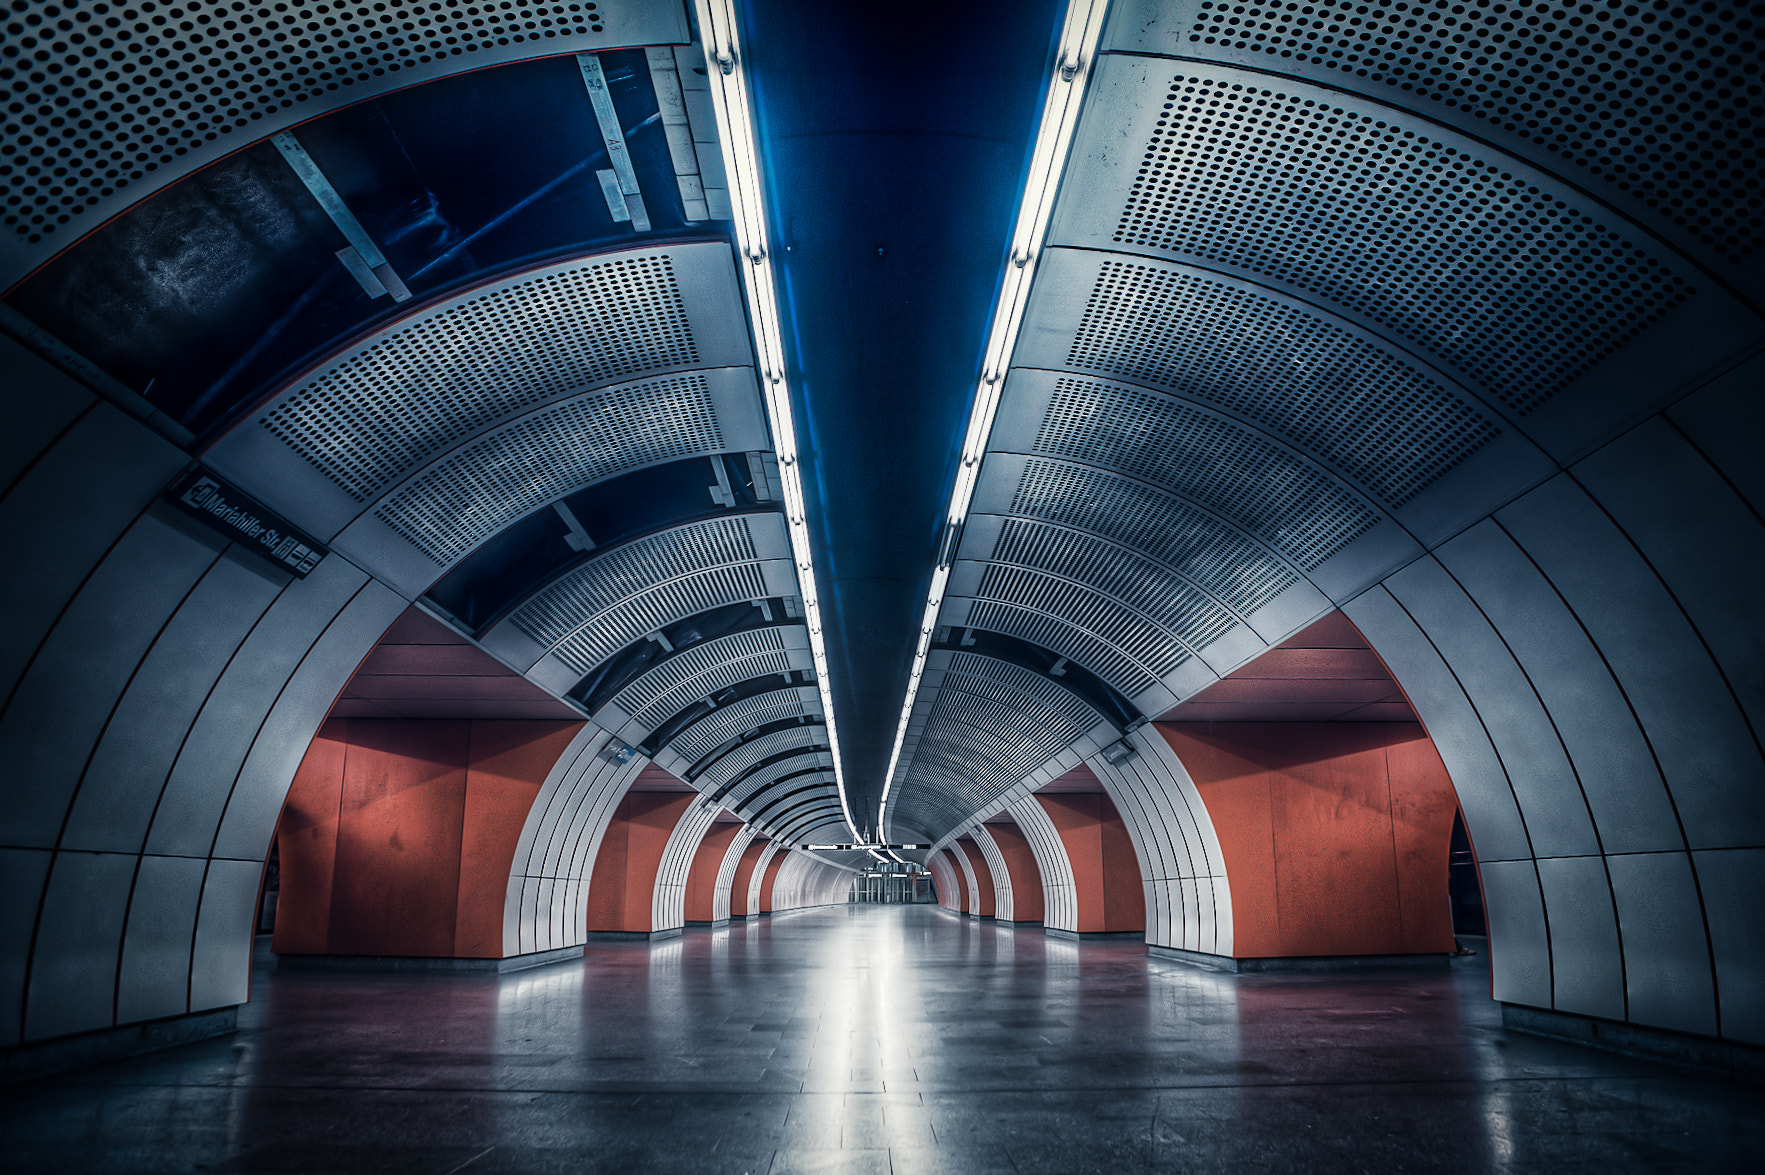 Photograph Wien subway by Tomas Pospichal on 500px